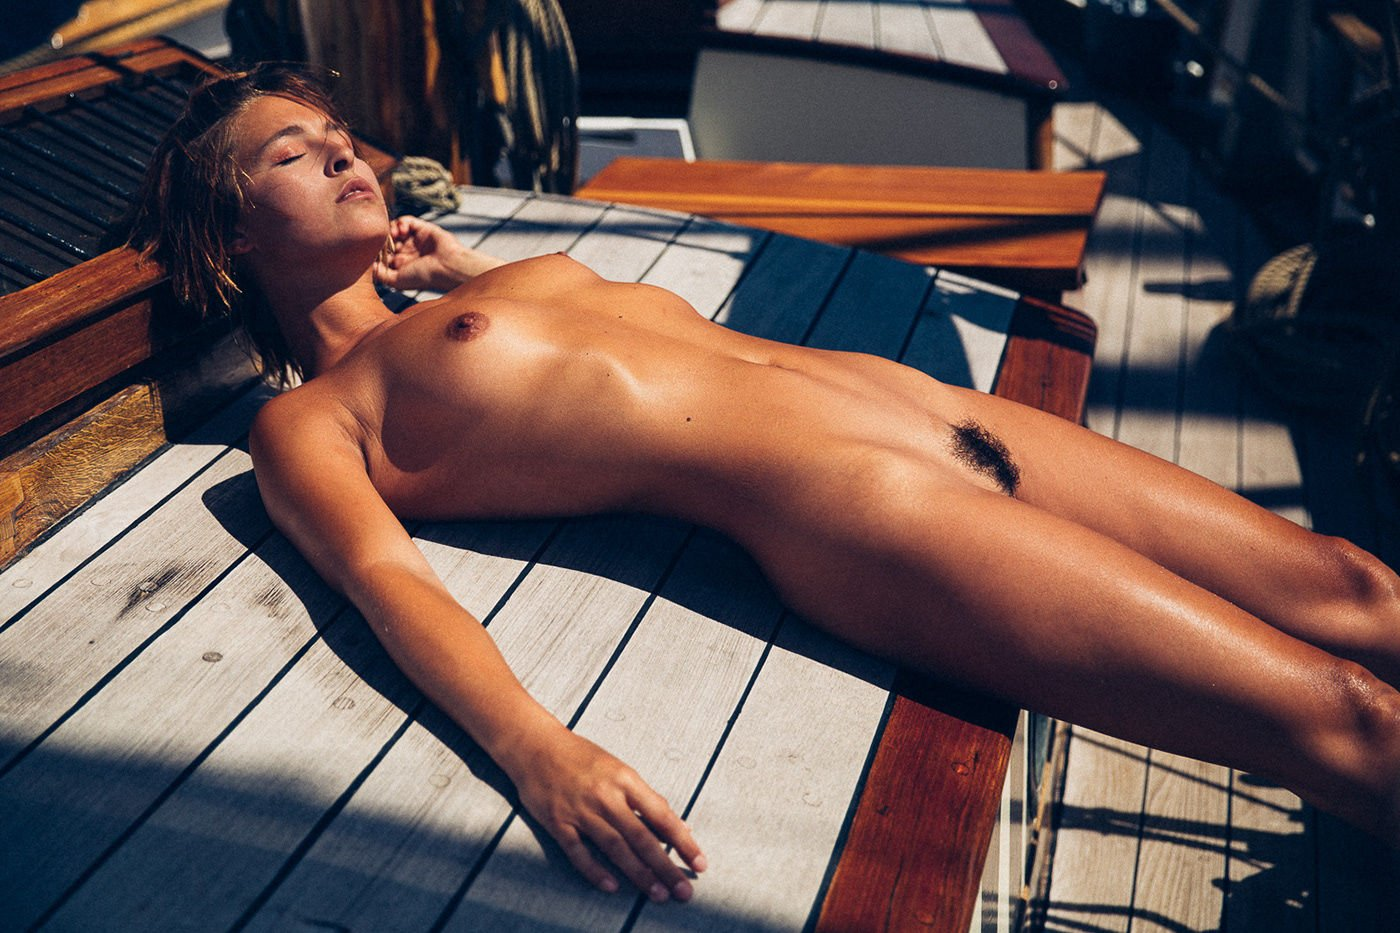 Marisa mell nude naked sex adult